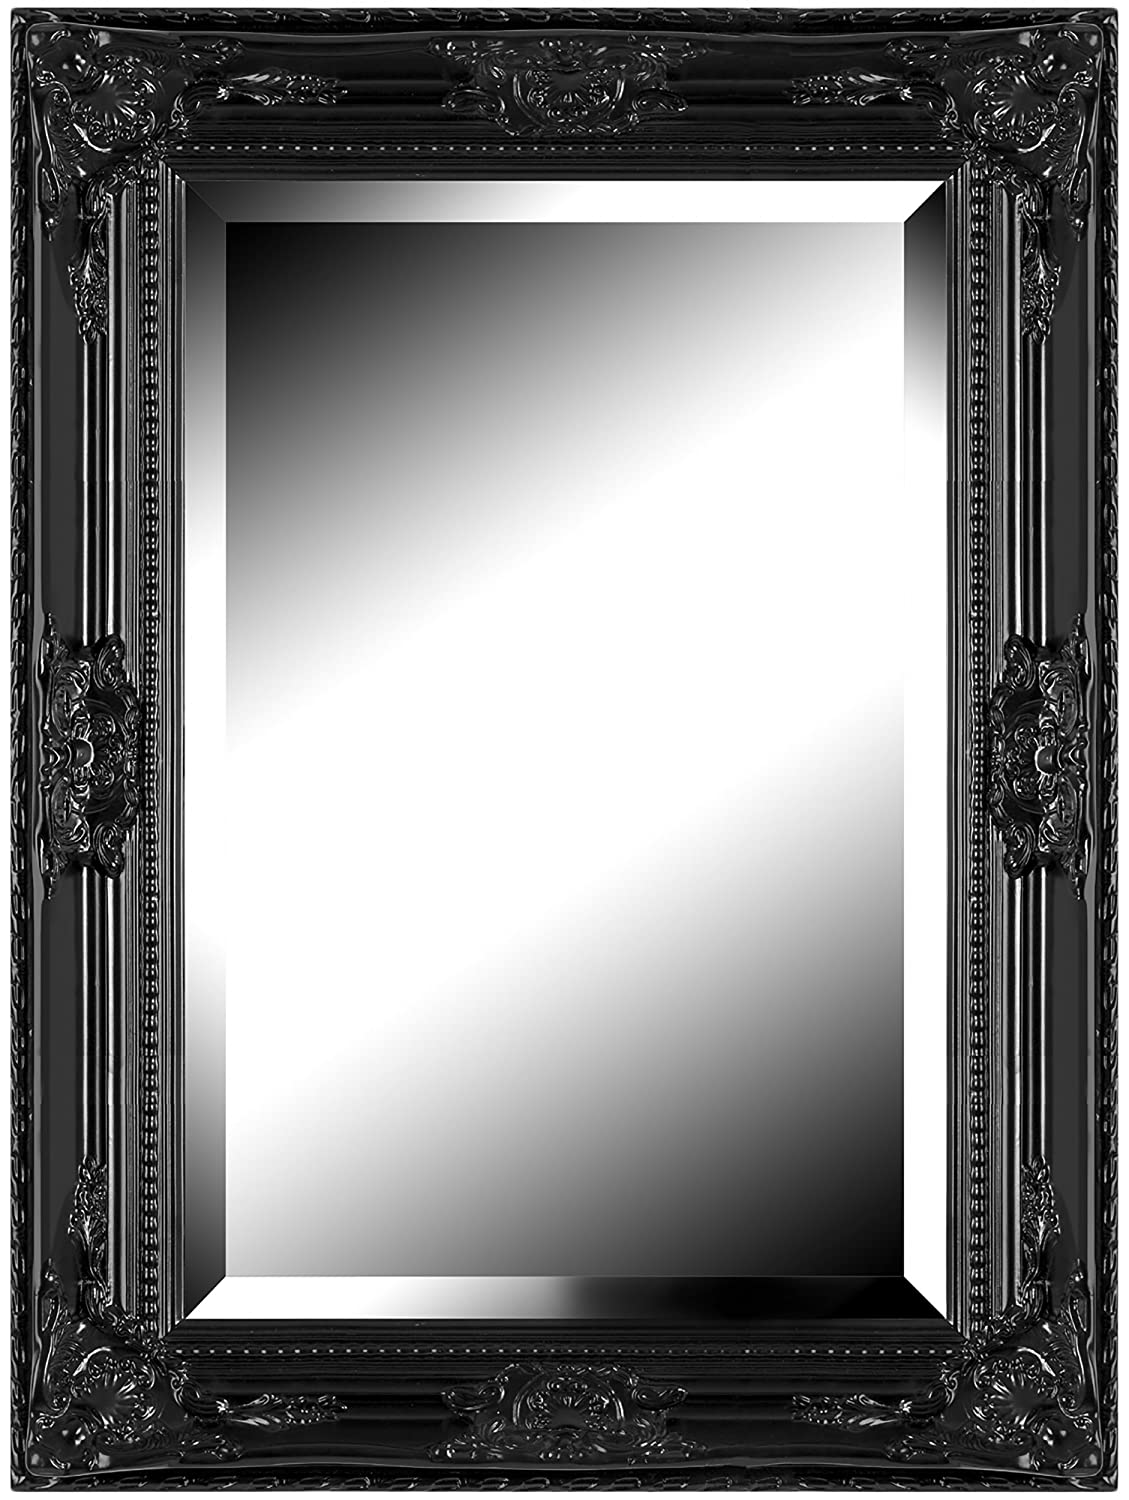 awesome miroir encadrement noir pictures. Black Bedroom Furniture Sets. Home Design Ideas